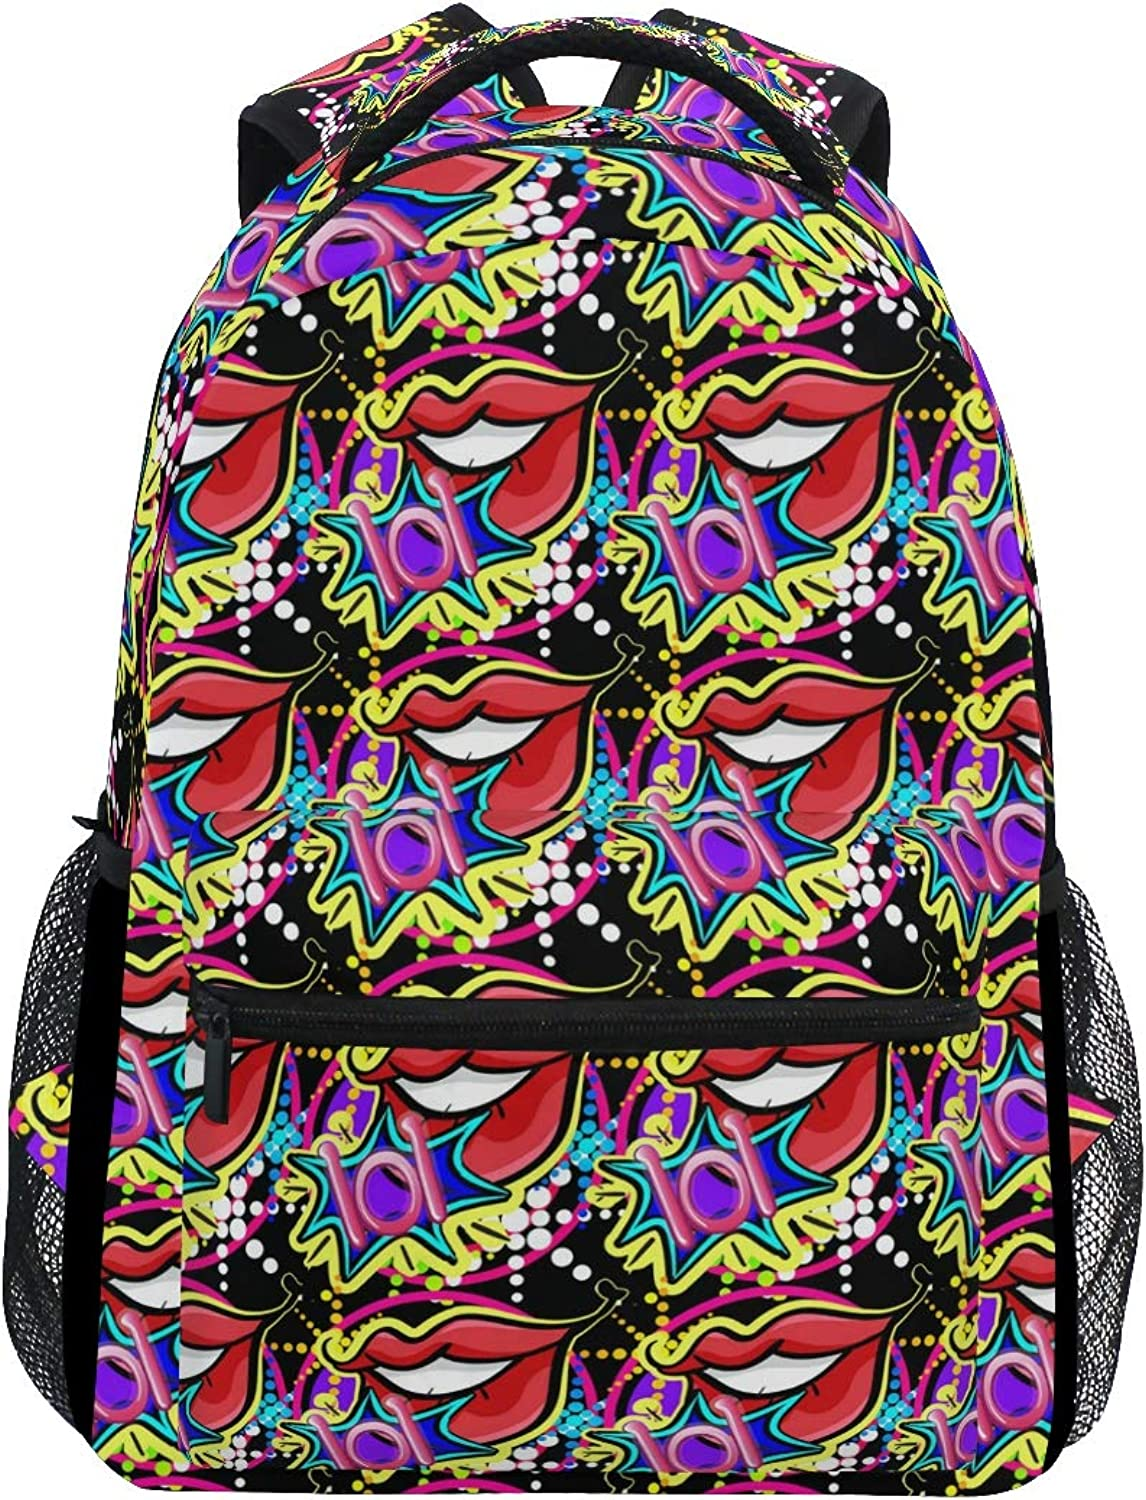 Cool Graffiti Stickers Lips Large Backpack Travel Outdoor Sports Laptop Backpack for Women & Men College School Water Resistant